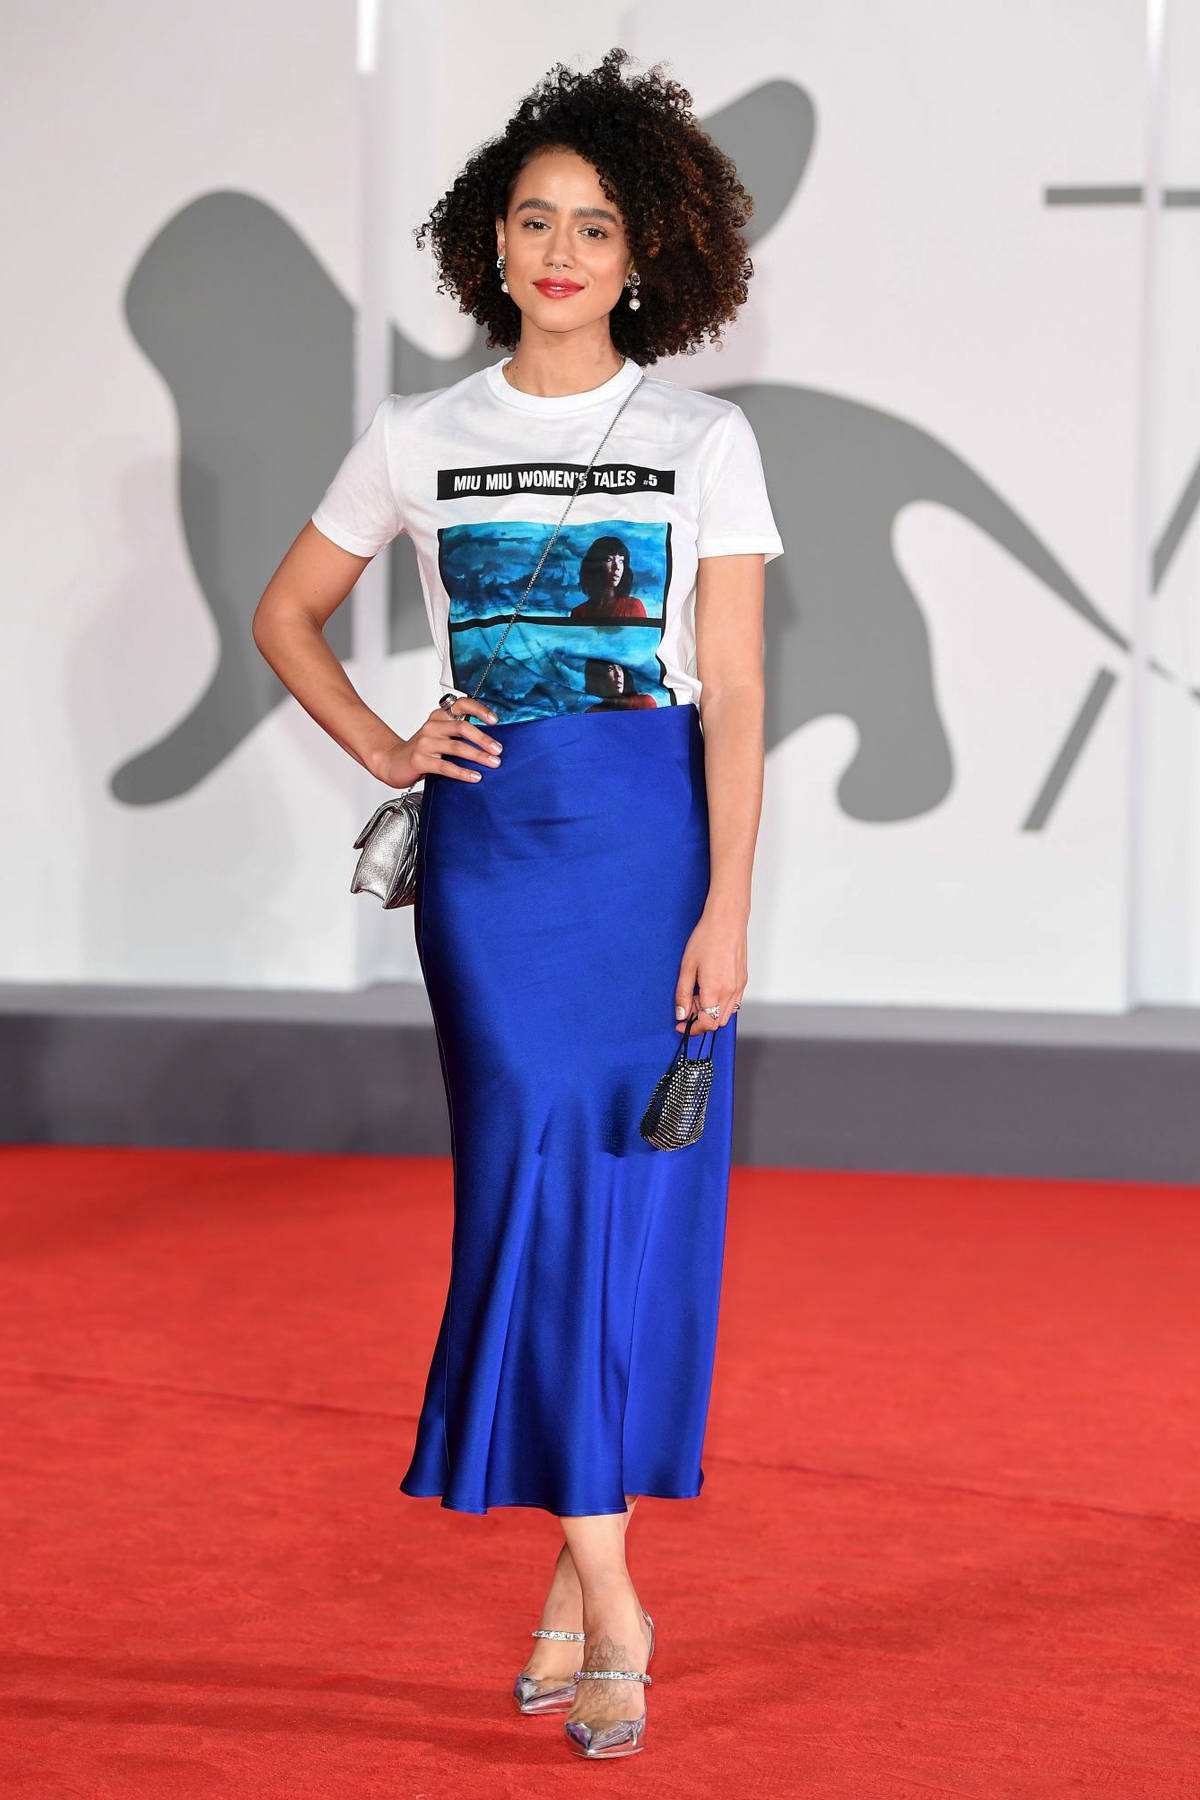 Nathalie Emmanuel attends the Premiere of 'Revenge Room' during the 77th Venice Film Festival in Venice, Italy